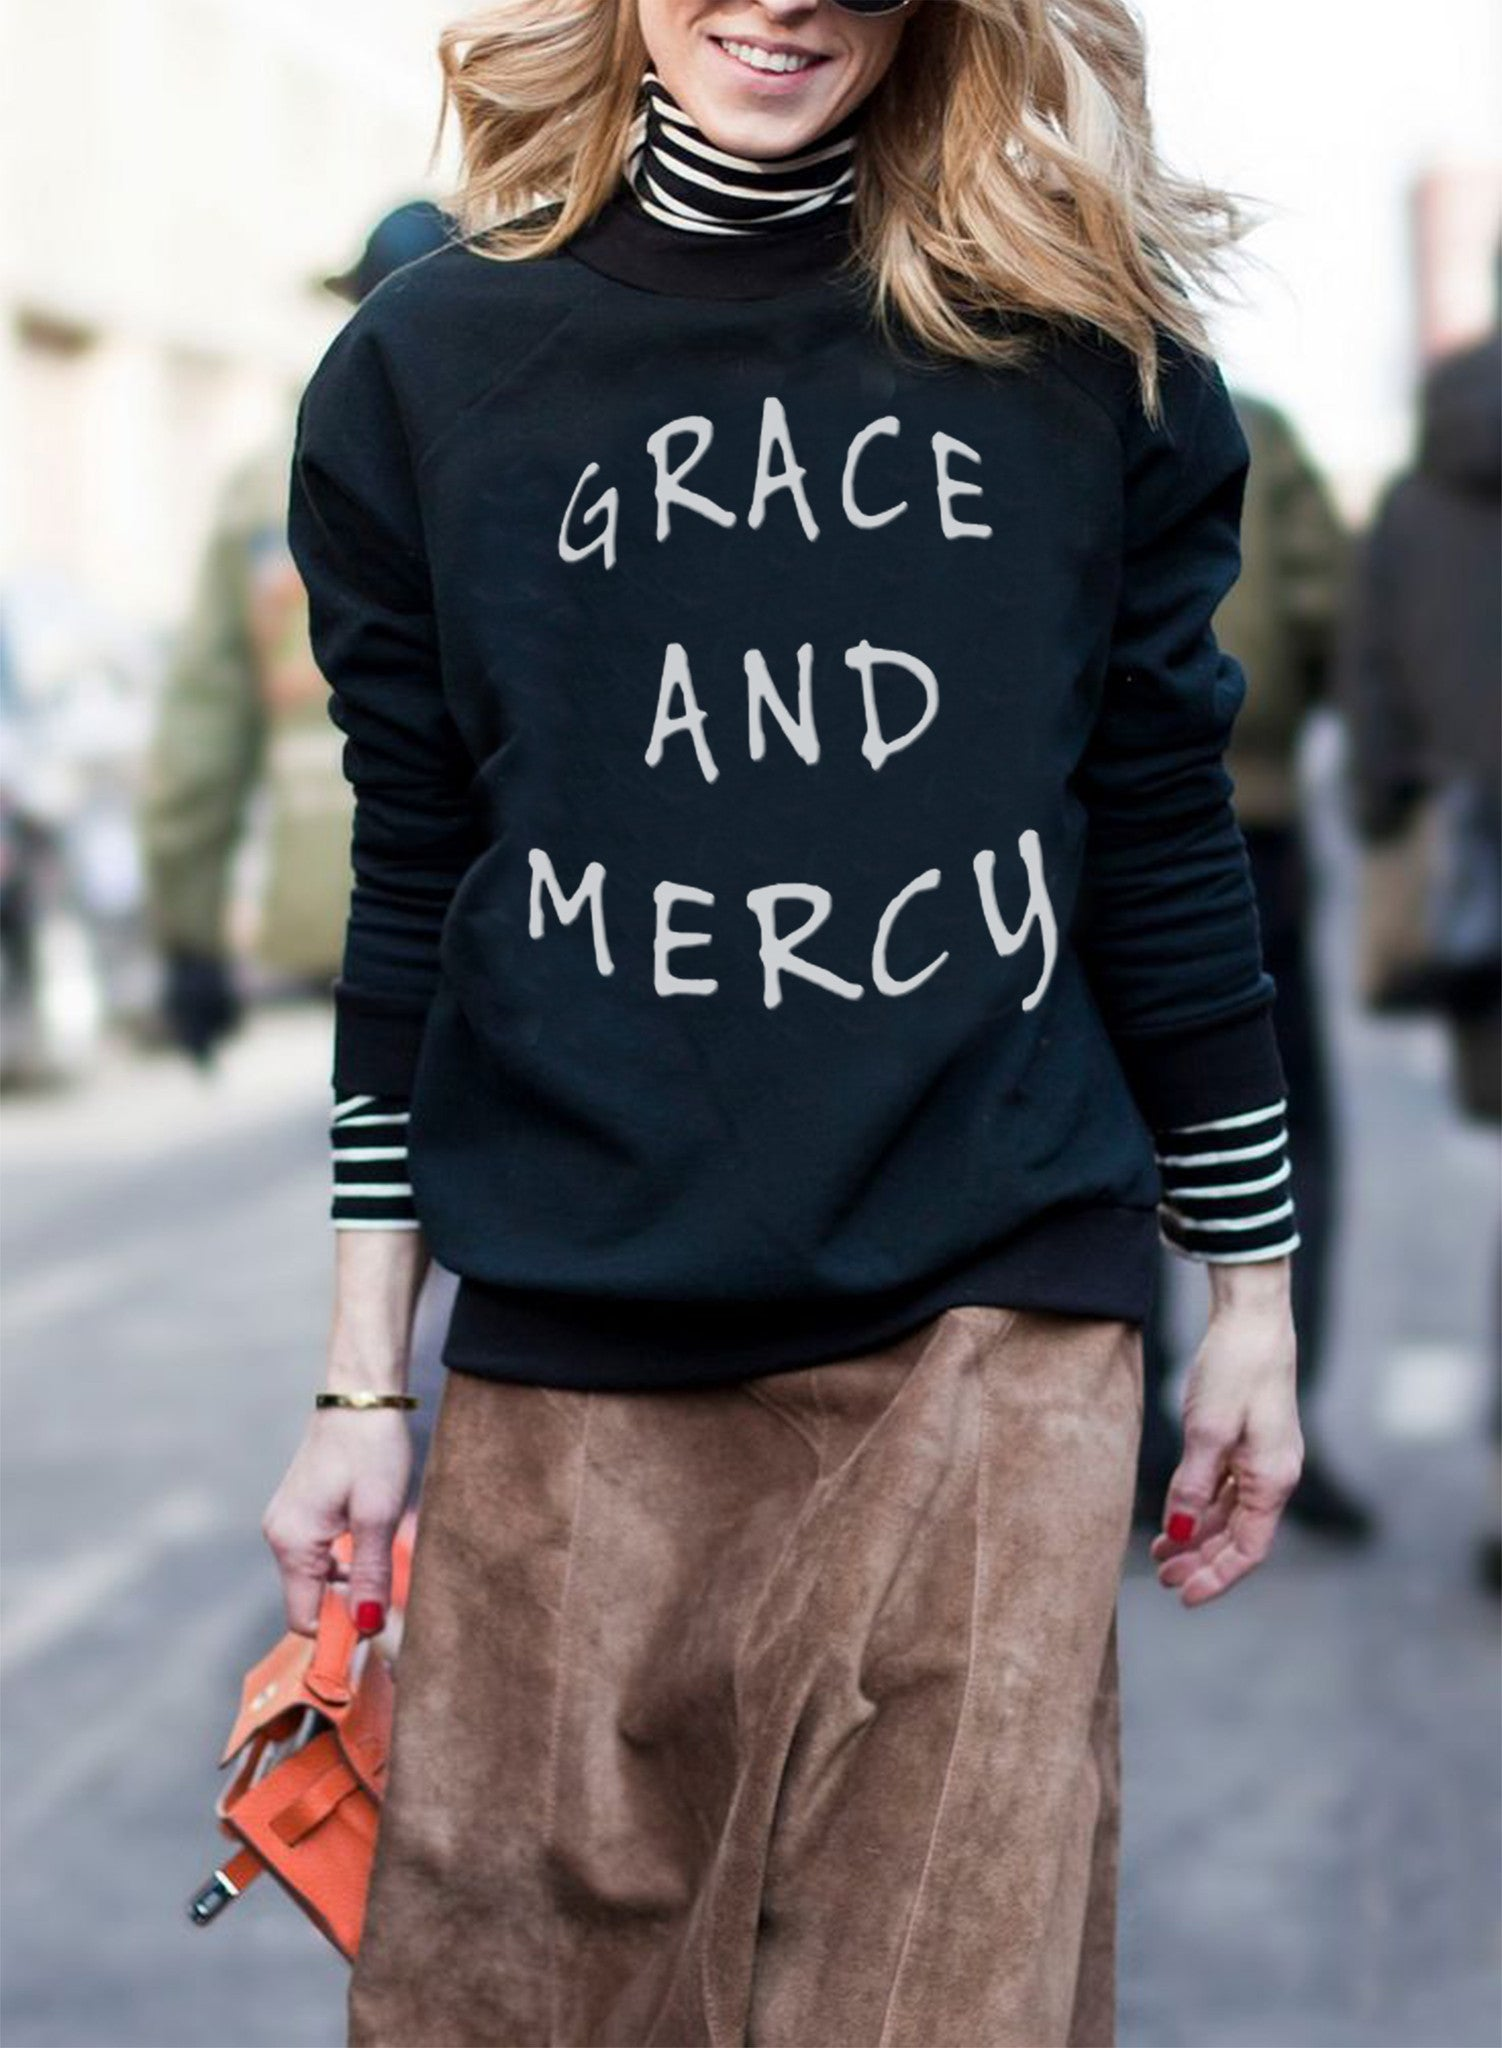 Grace and Mercy Crewneck Sweaters